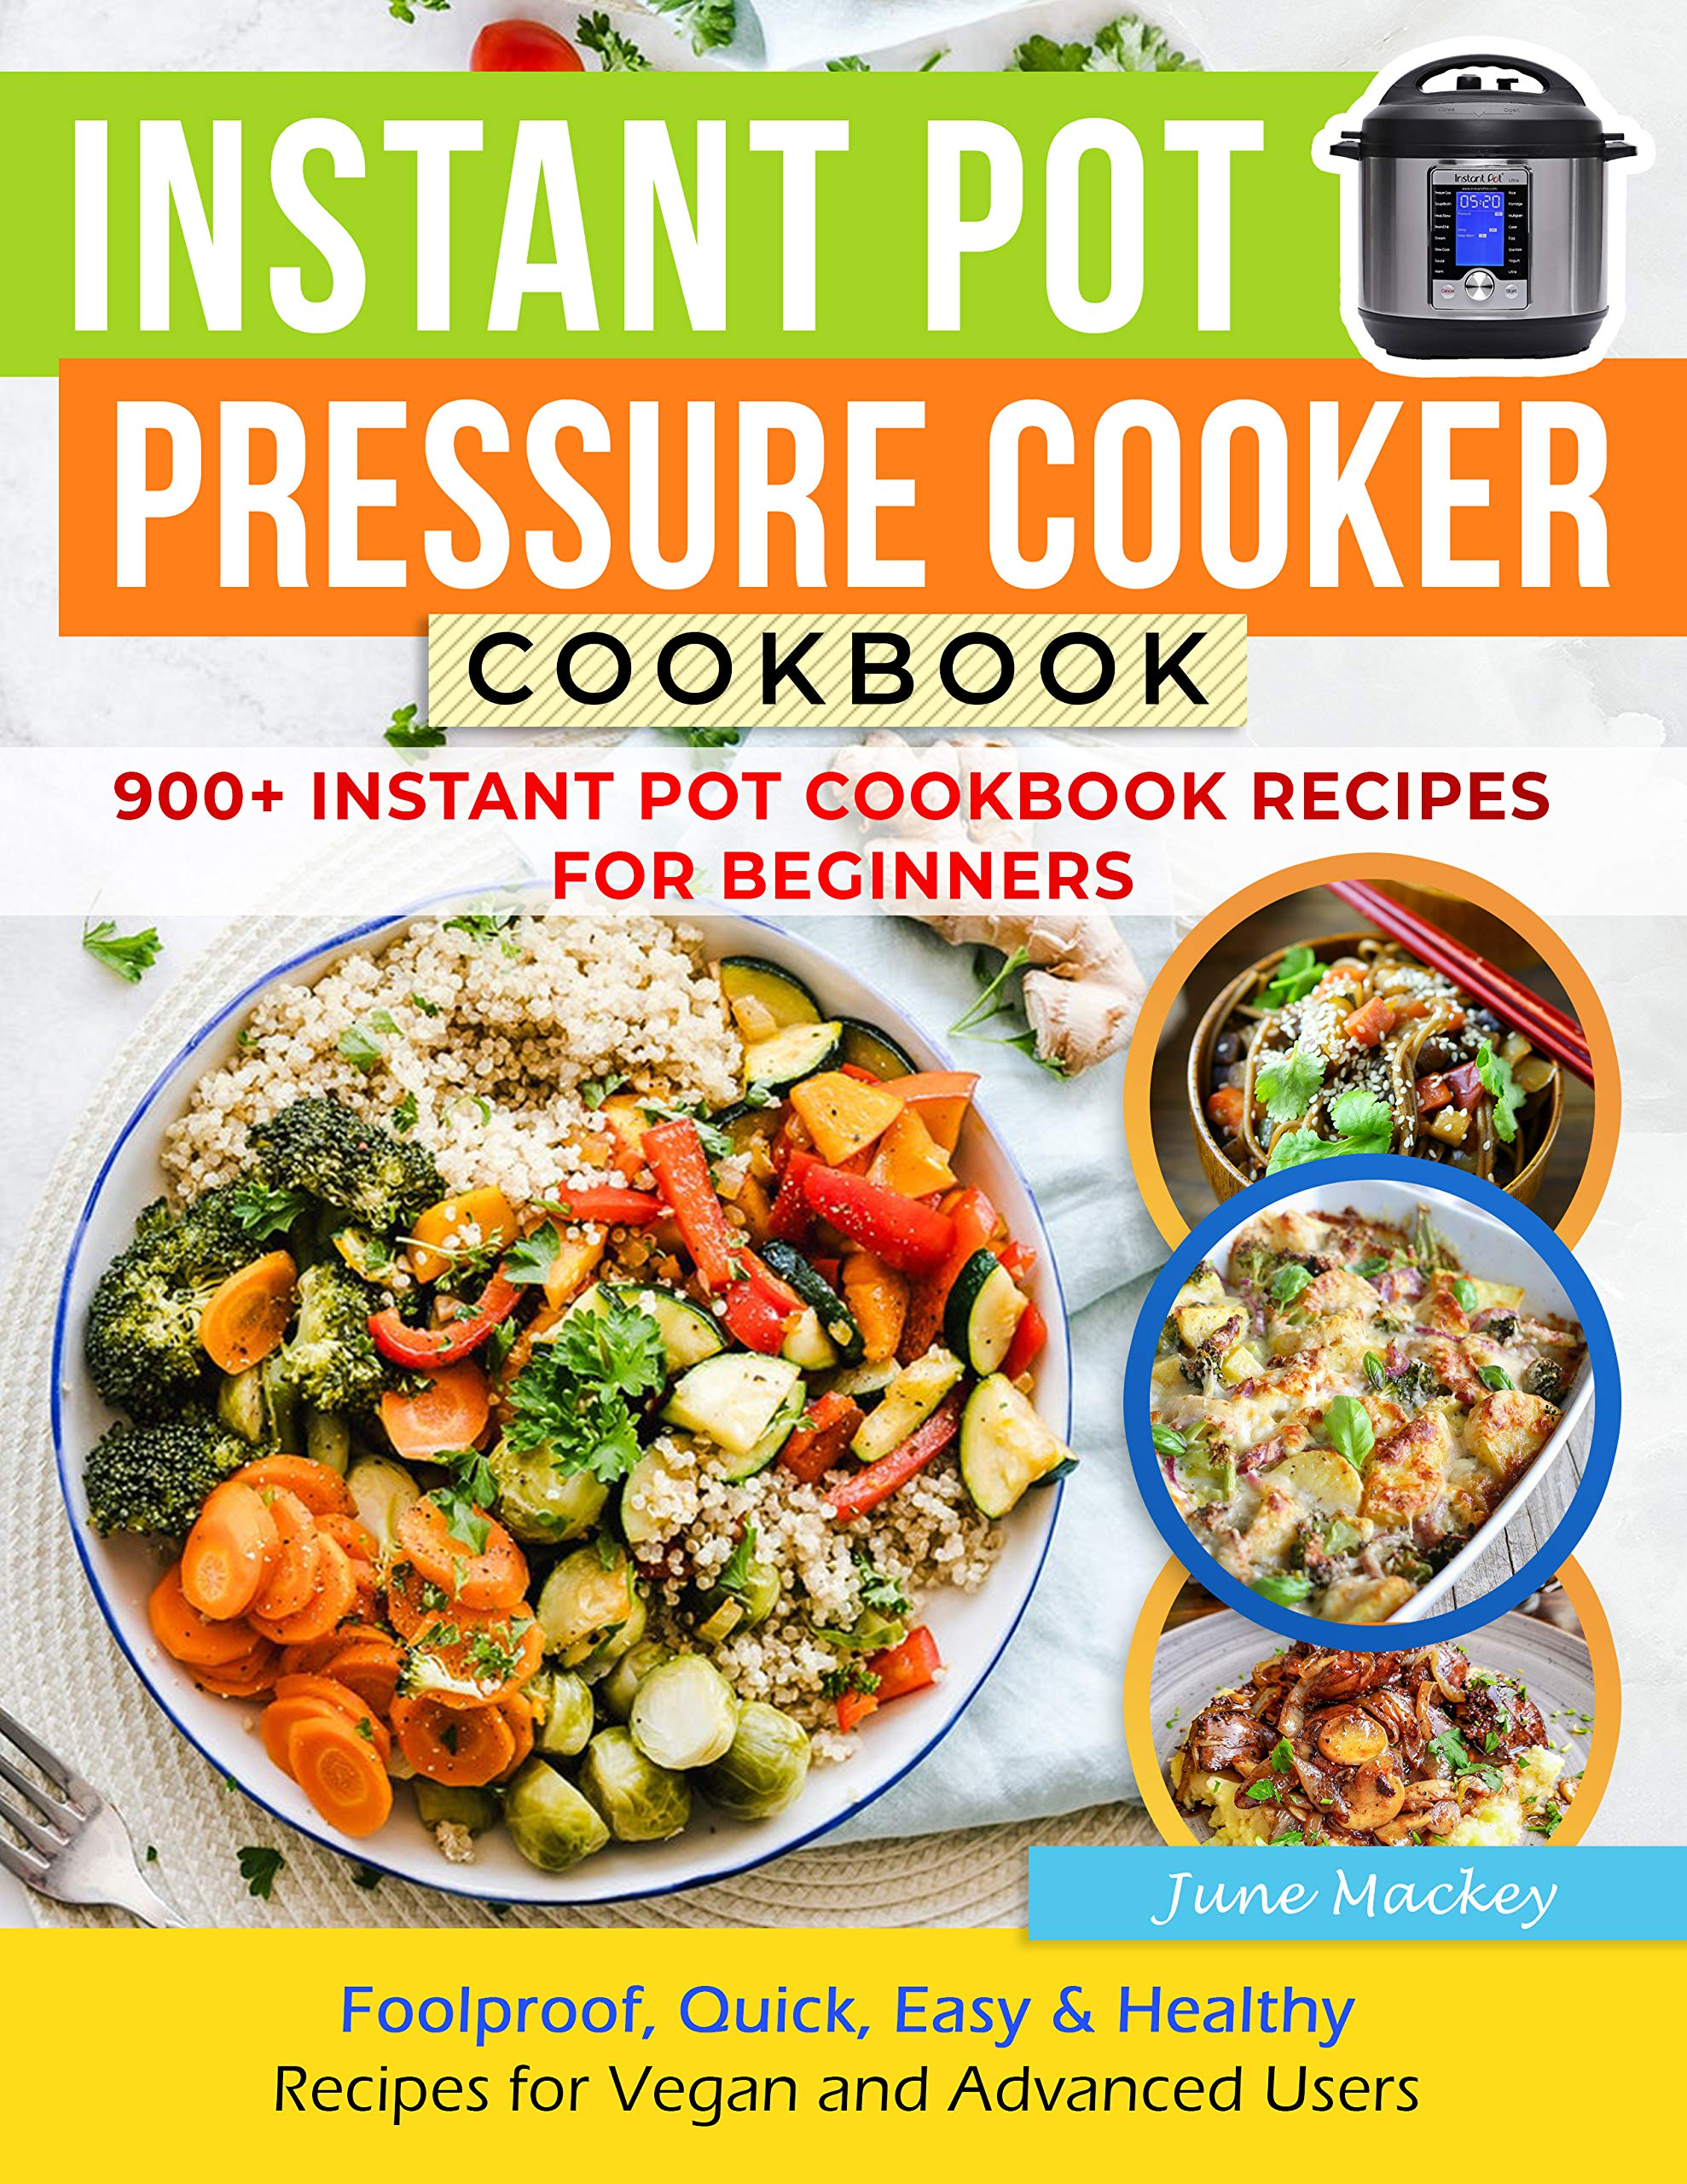 Instant Pot Pressure Cooker Cookbook: 900+ Instant Pot Cookbook Recipes for Beginners | Foolproof, Quick, Easy & Healthy Recipes for Vegan and Advanced Users